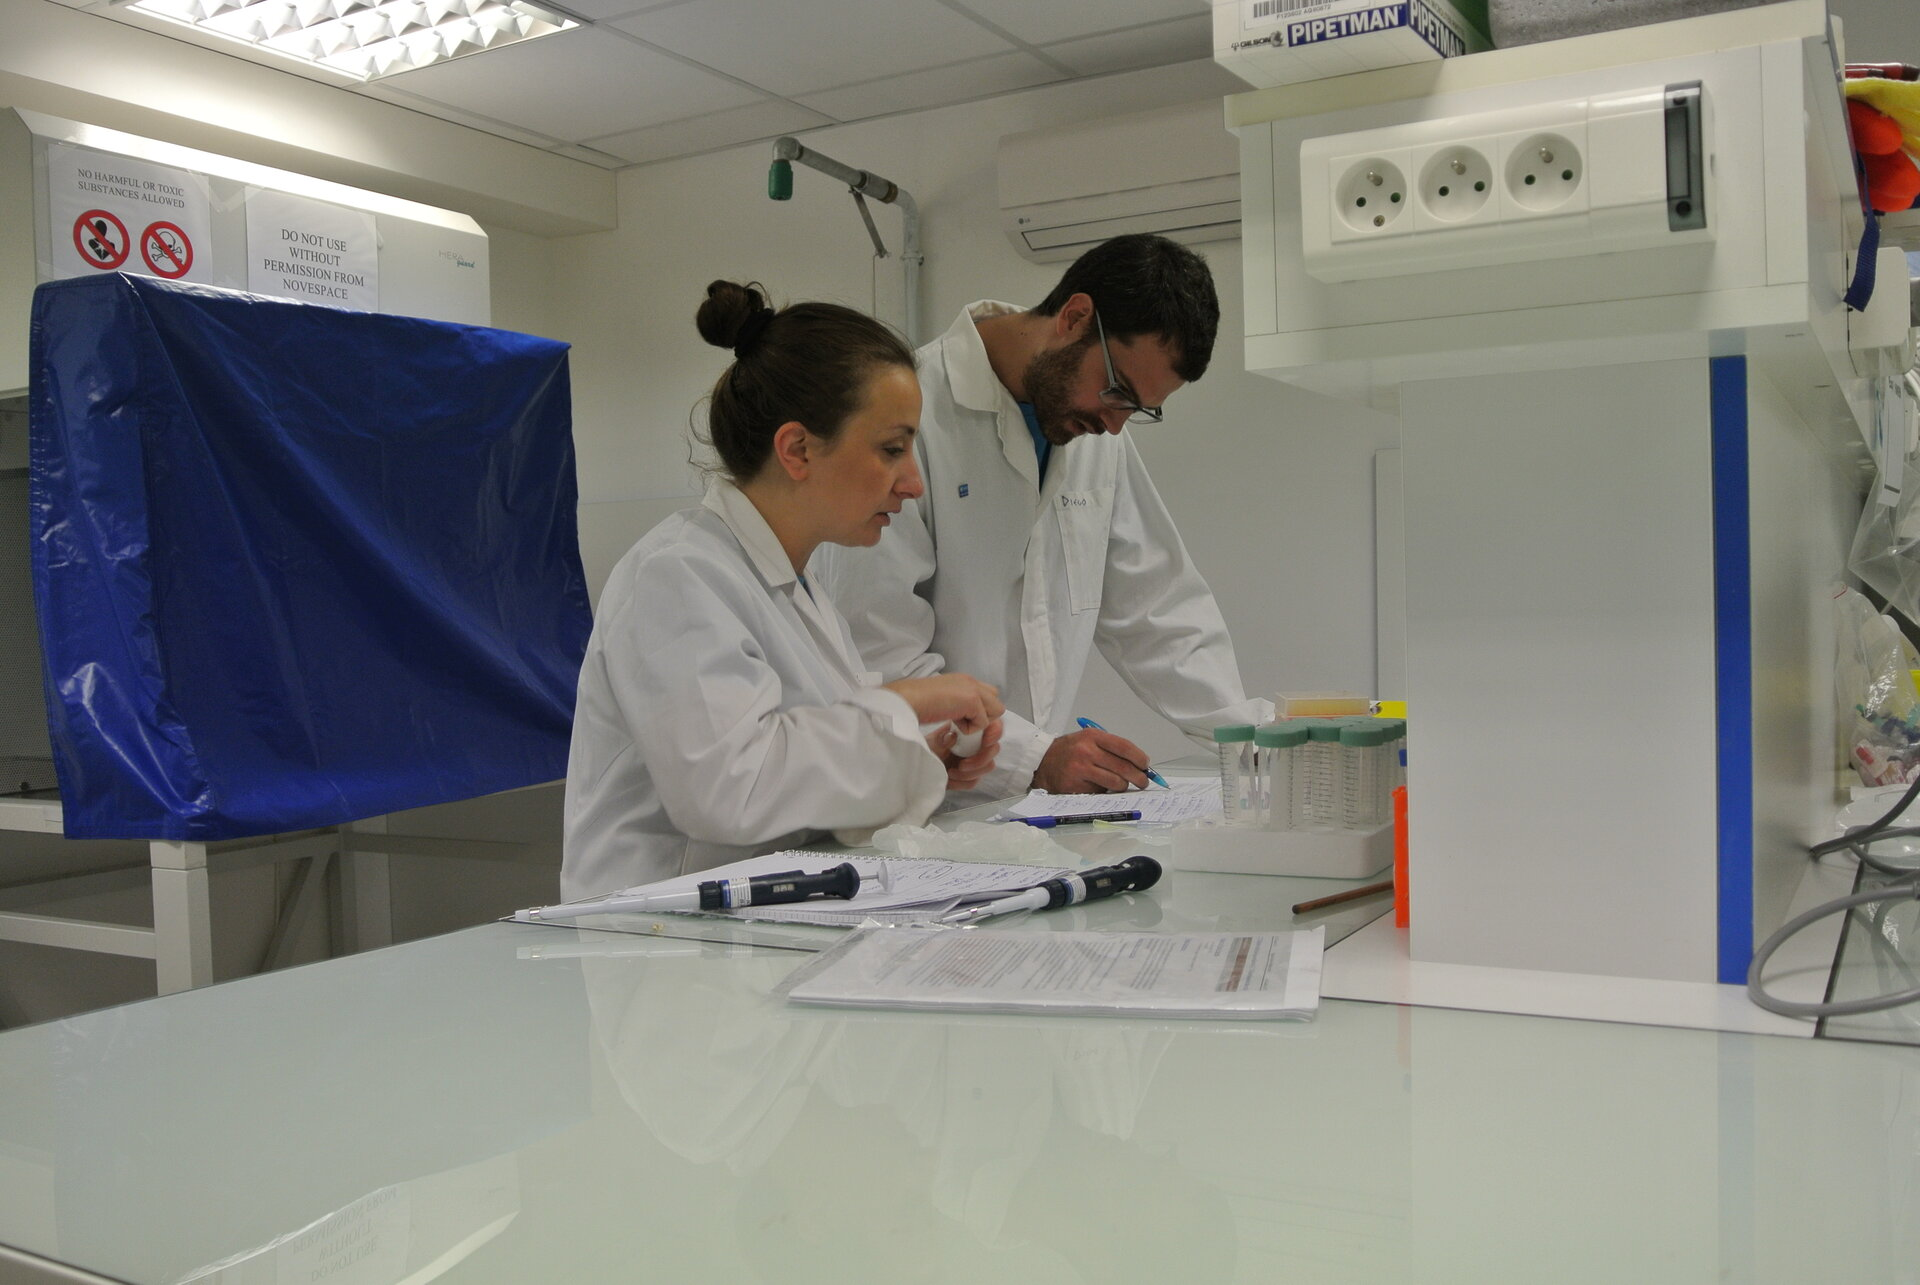 LINVforROS students with their experiment